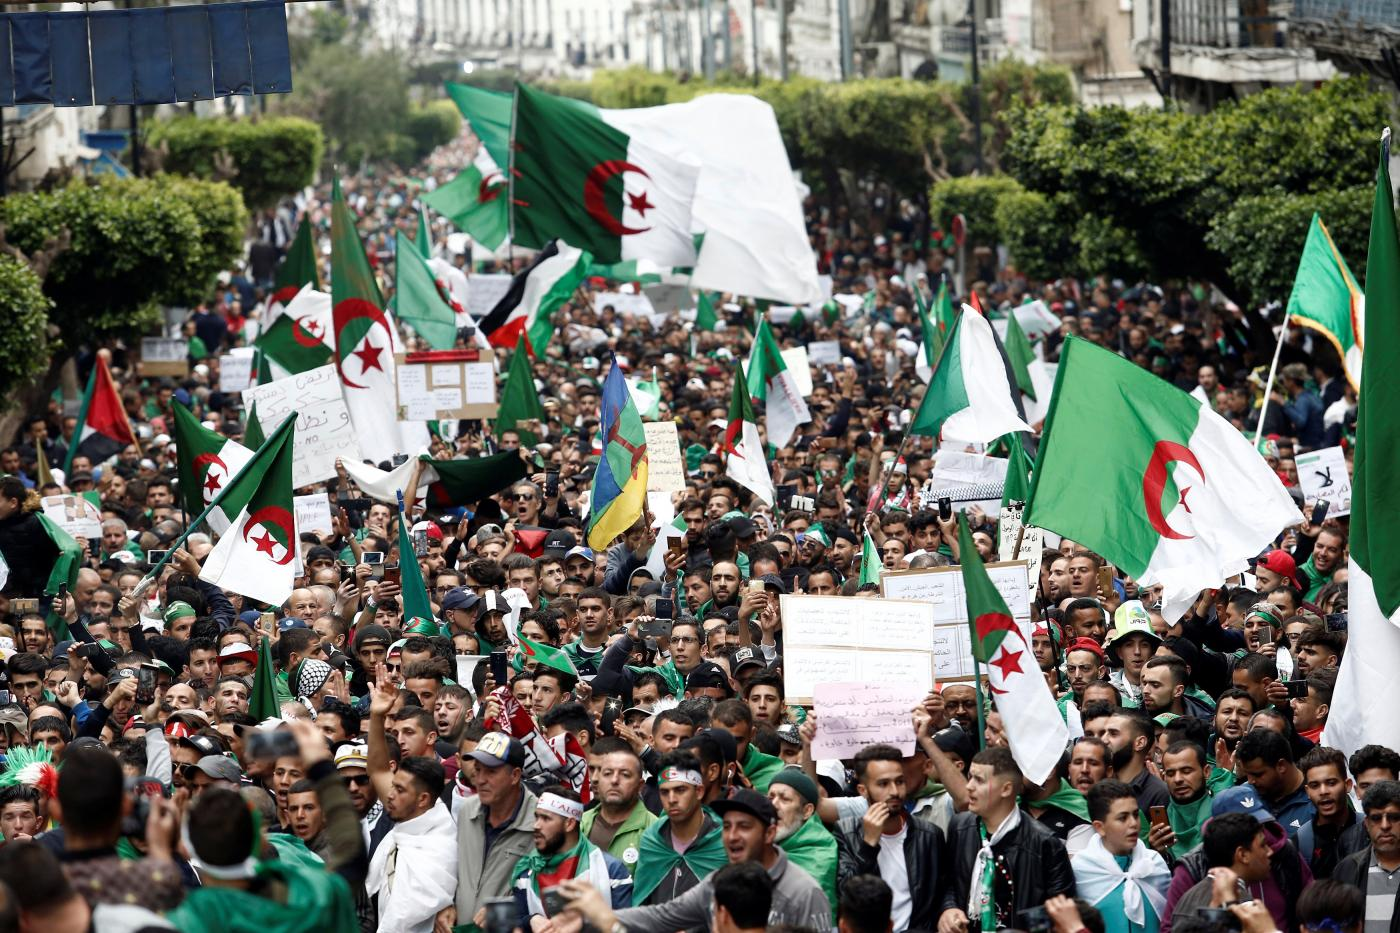 Protesters hold flags and banners in Algiers as they press demands for democratic change, April 19, 2019.